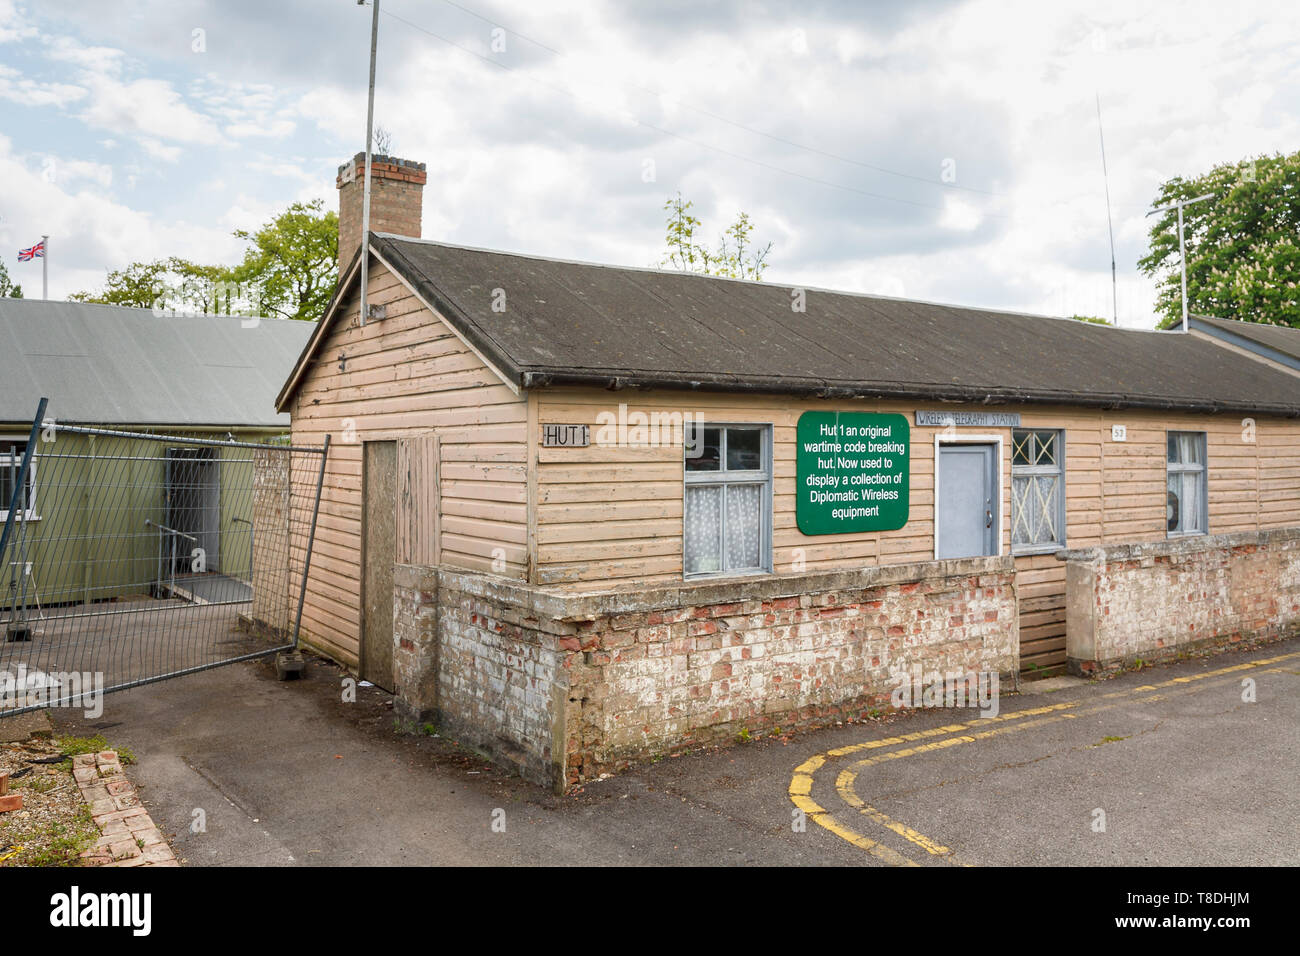 Hut 1 at Bletchley Park, once the top-secret home of the World War Two Codebreakers, now a leading heritage attraction - Stock Image